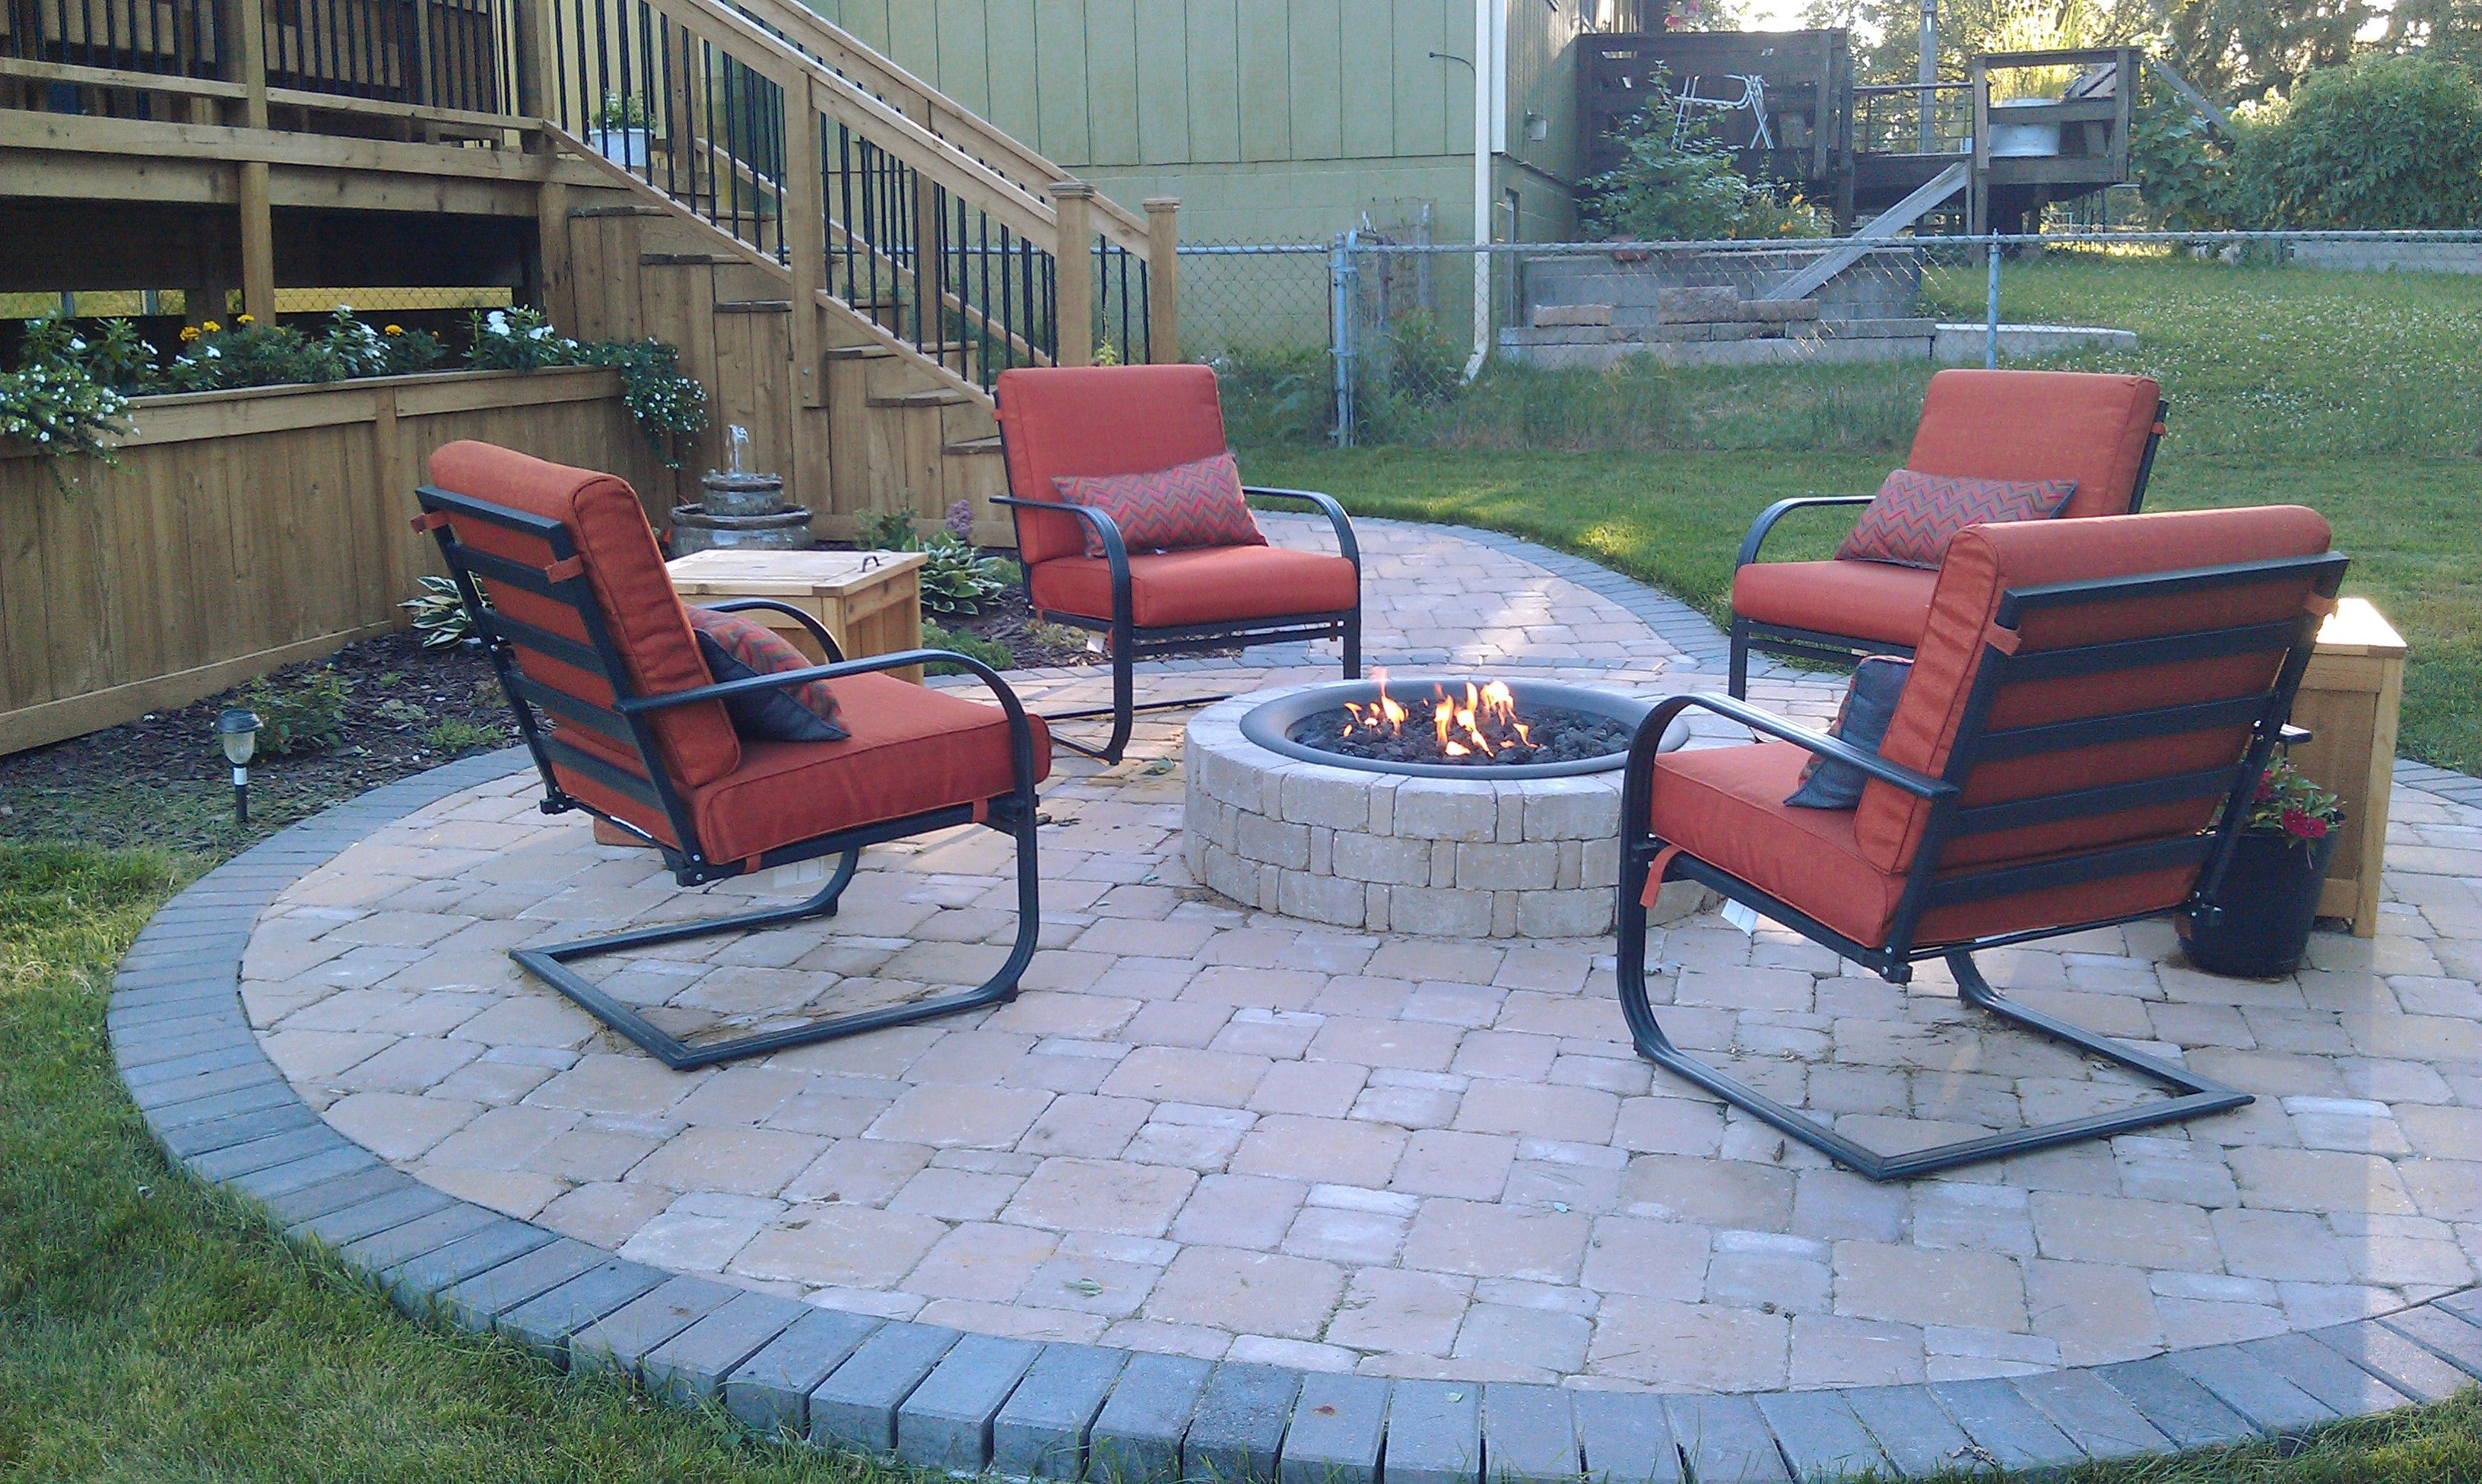 Diy Propane Gas Firepit Bricks From Menards Firepit Bowl From Home Depot Propane Gas Firepit Ring And Ki Fire Pit Furniture Fire Pit Decor Fire Pit Backyard